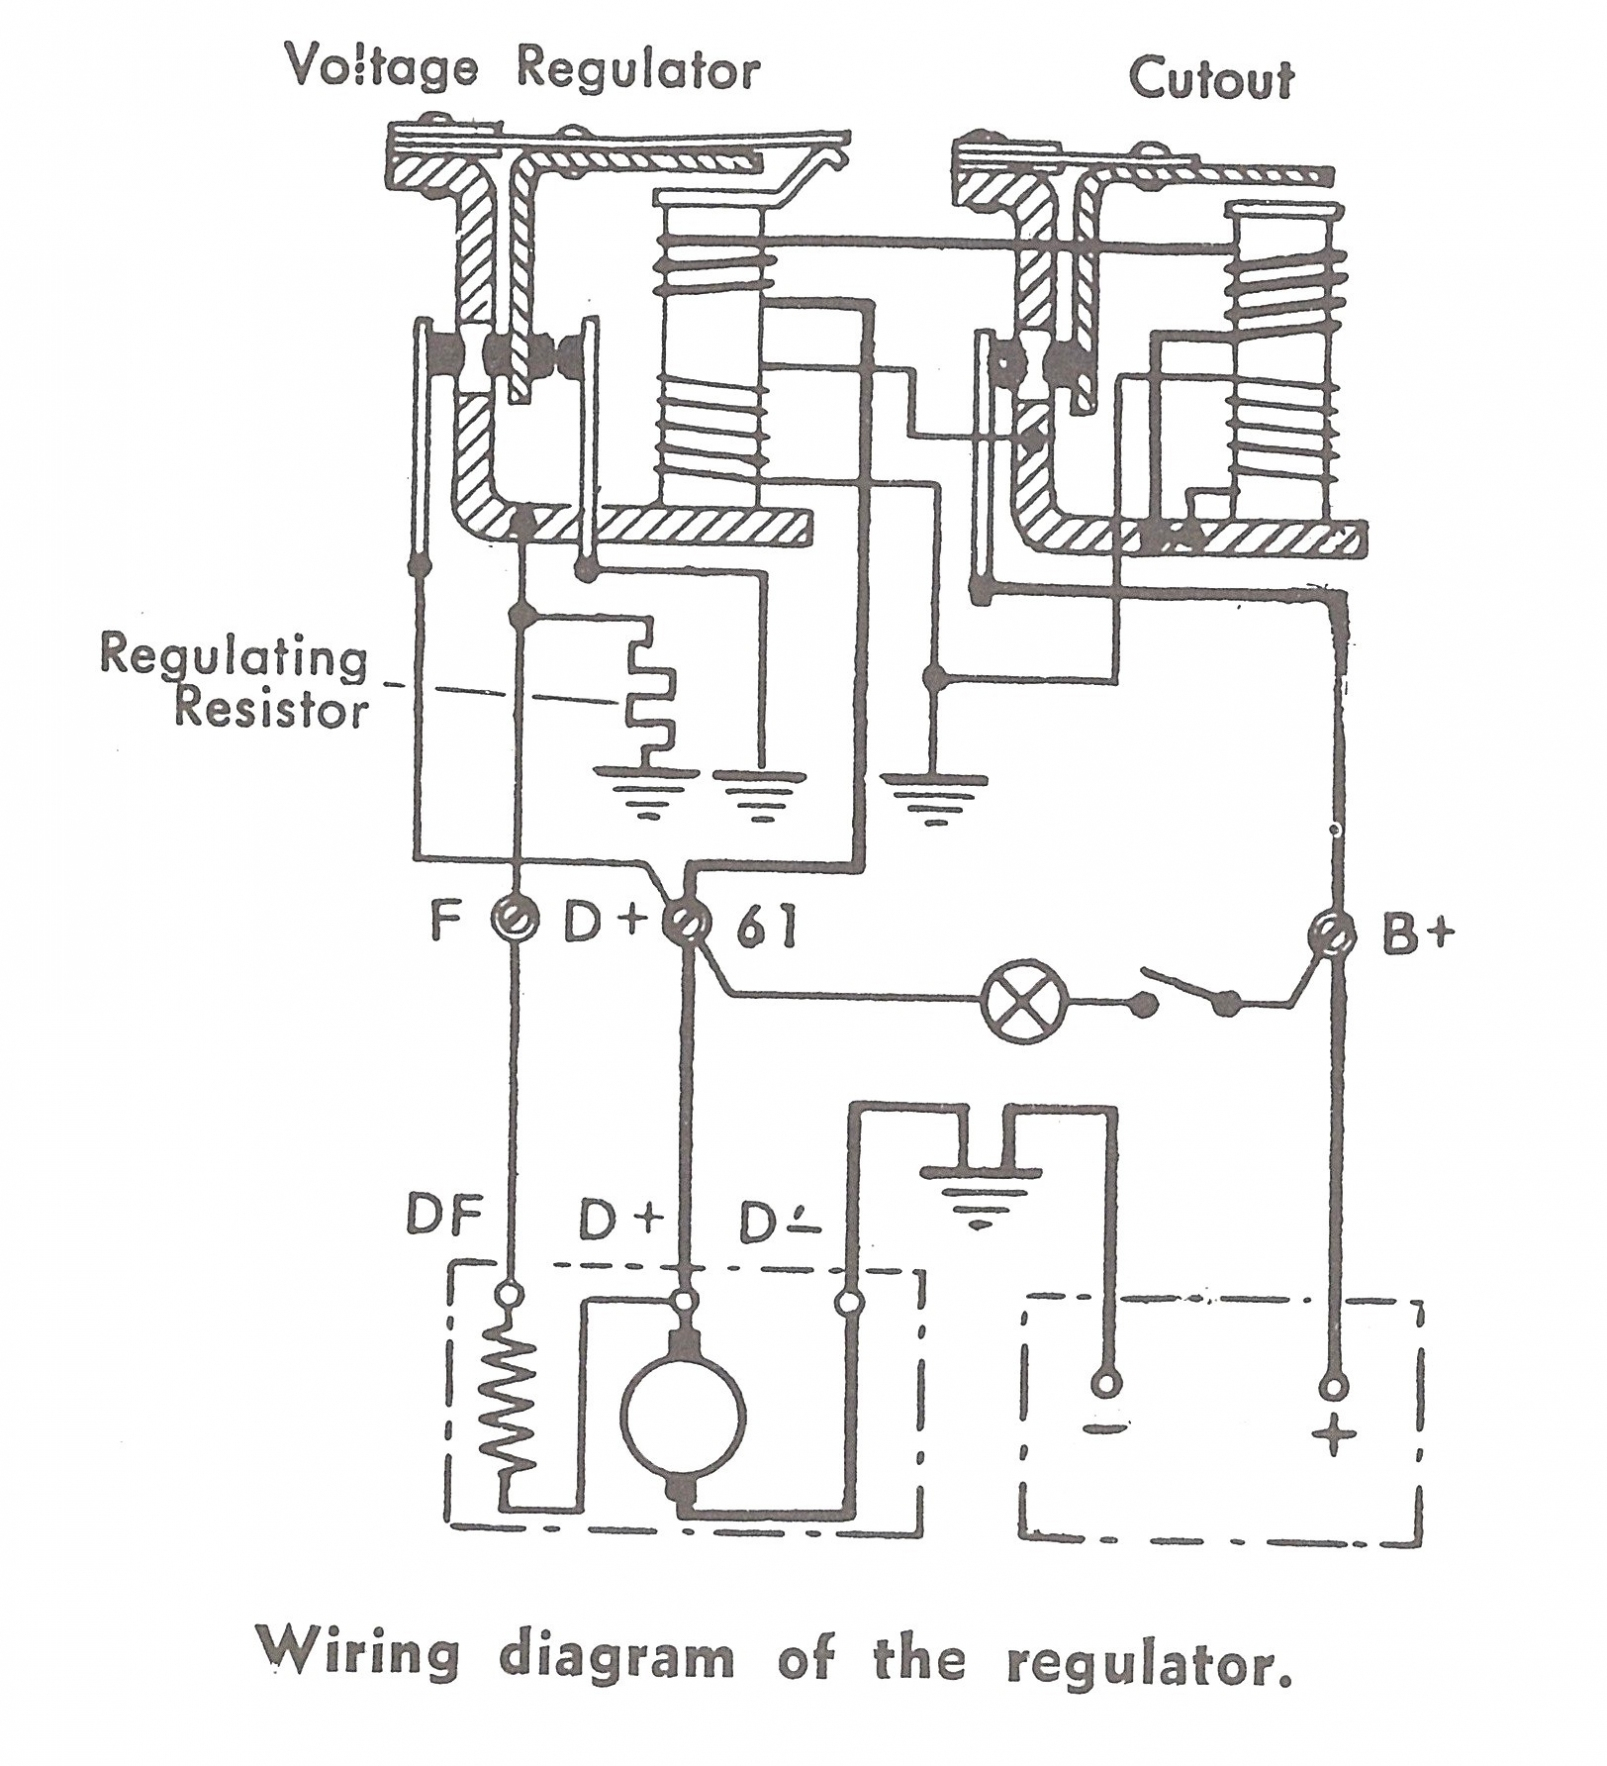 Alternator Exciter Wire Diagram | Wiring Library - Alternator Exciter Wiring Diagram